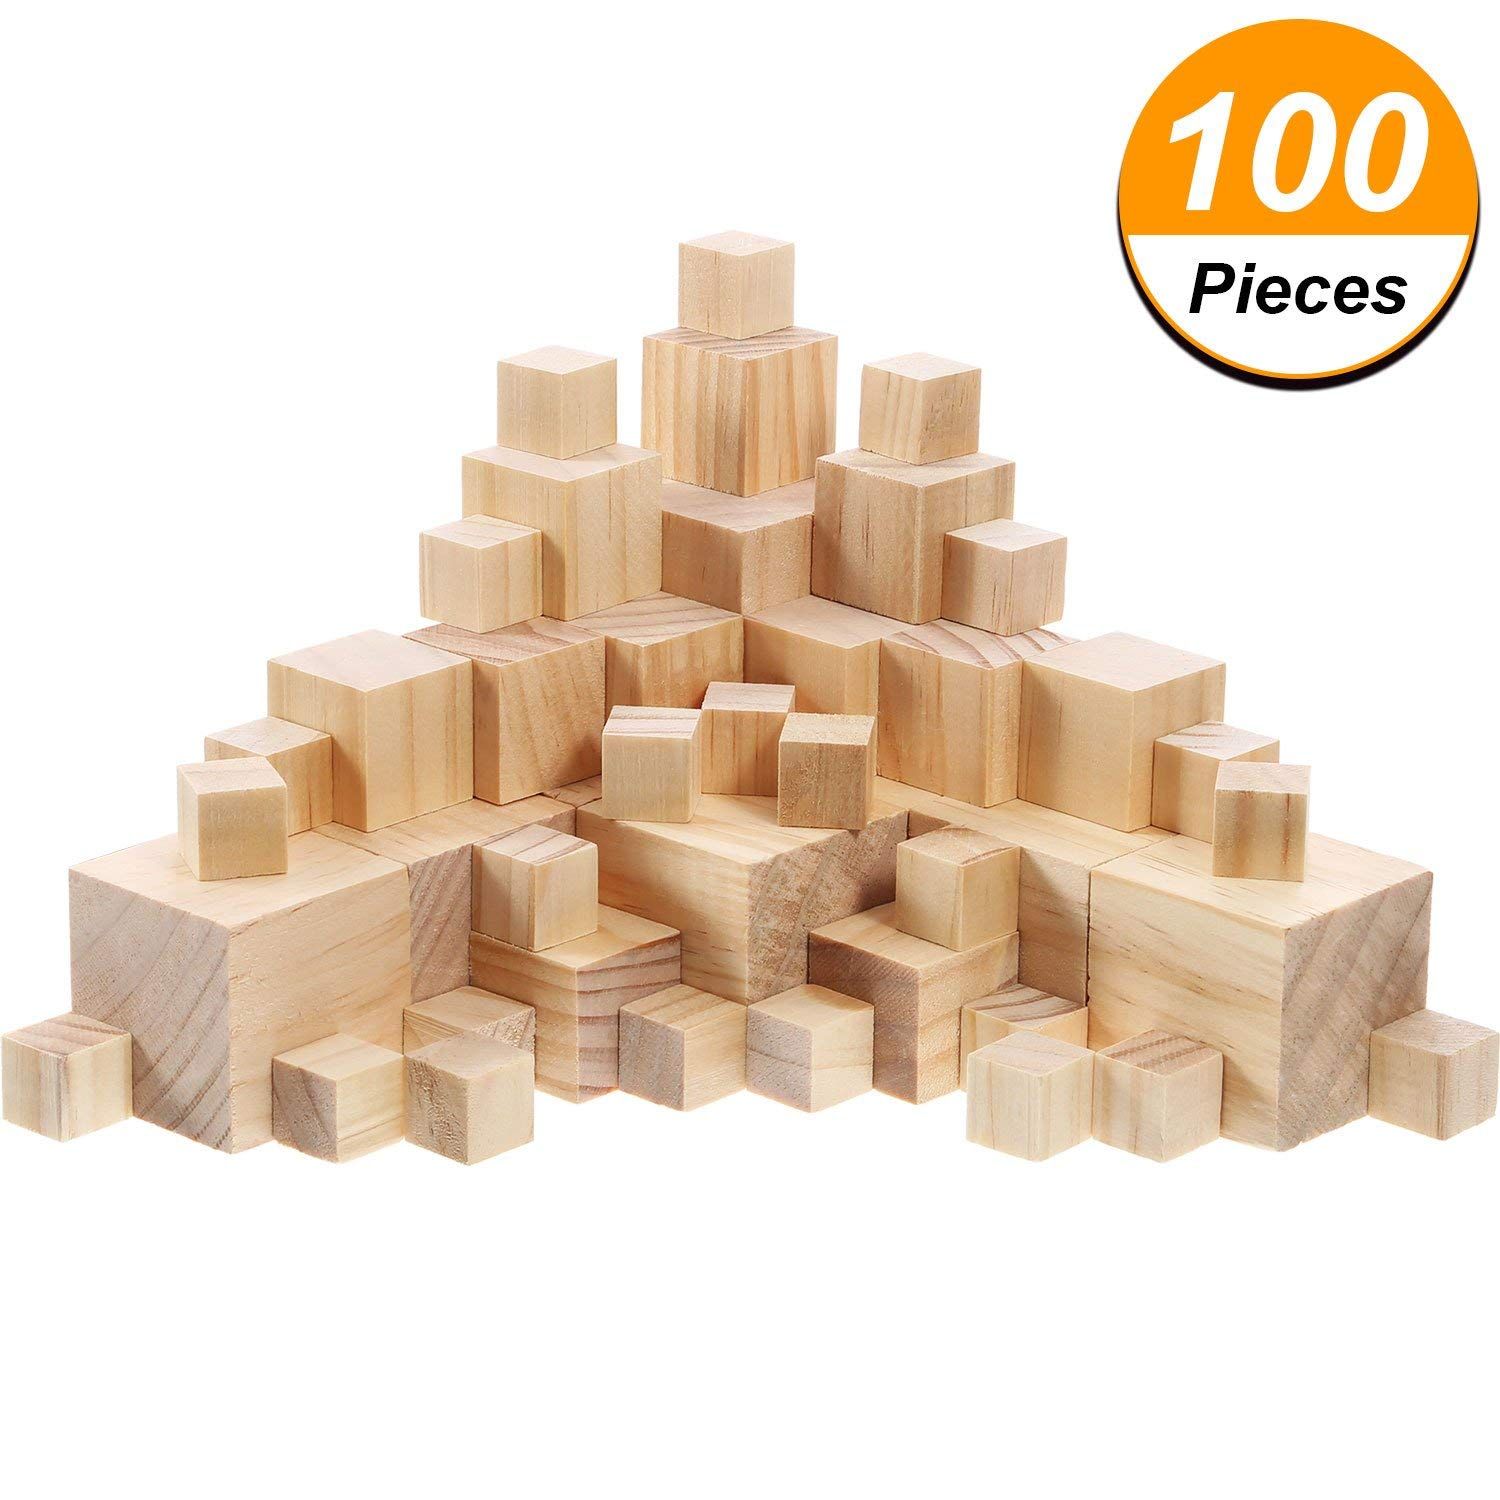 Hicarer 100 Pieces Unfinished Wooden Cubes Solid Natural Wooden Square Blocks for Baby Puzzle Making, Craft and DIY Project, 3 Sizes Mixed